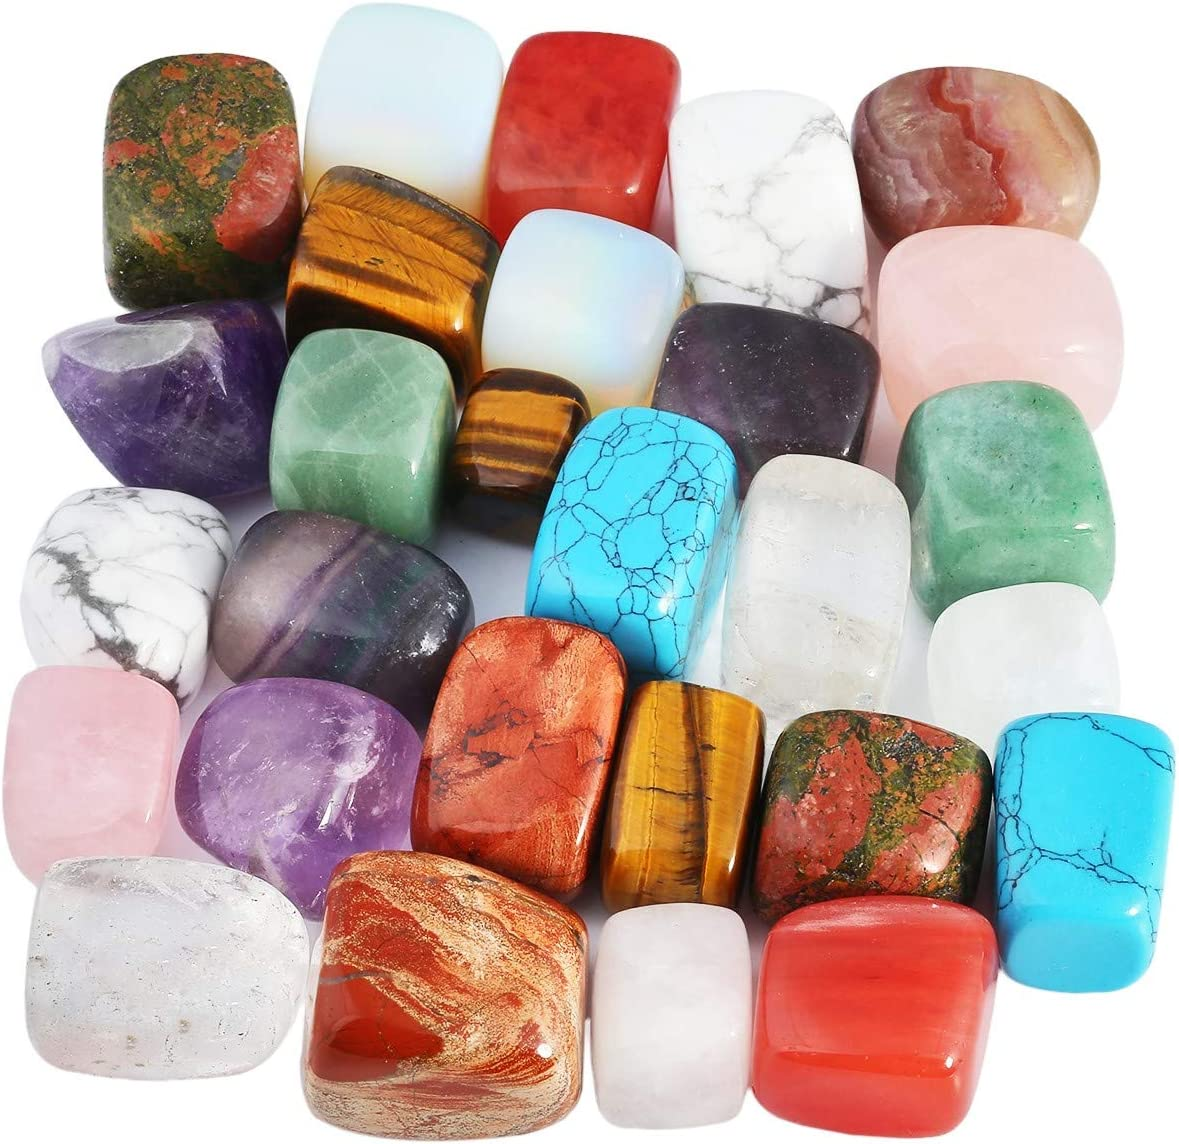 Nupuyai 1 lb Tumbled Ranking TOP7 Stones Shape Challenge the lowest price of Japan Crystals R Polished Irregular